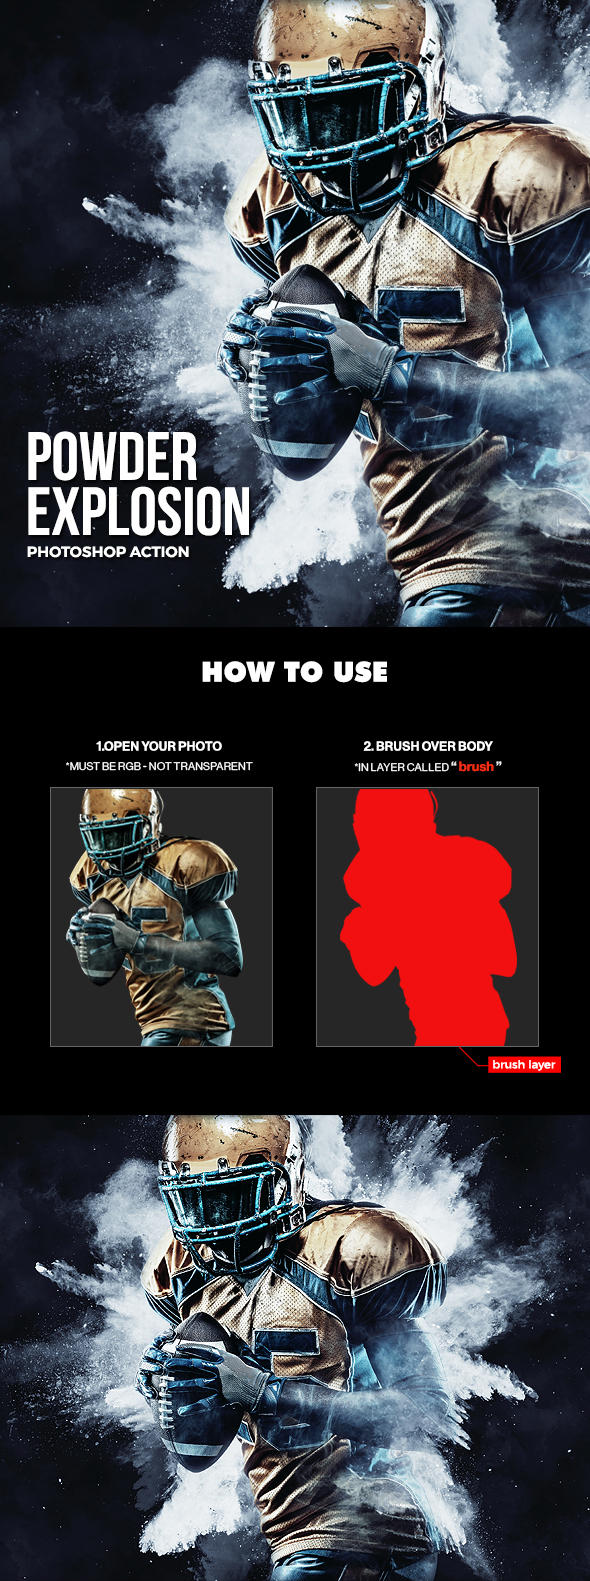 Powder Explosion Photoshop Action by hemalaya